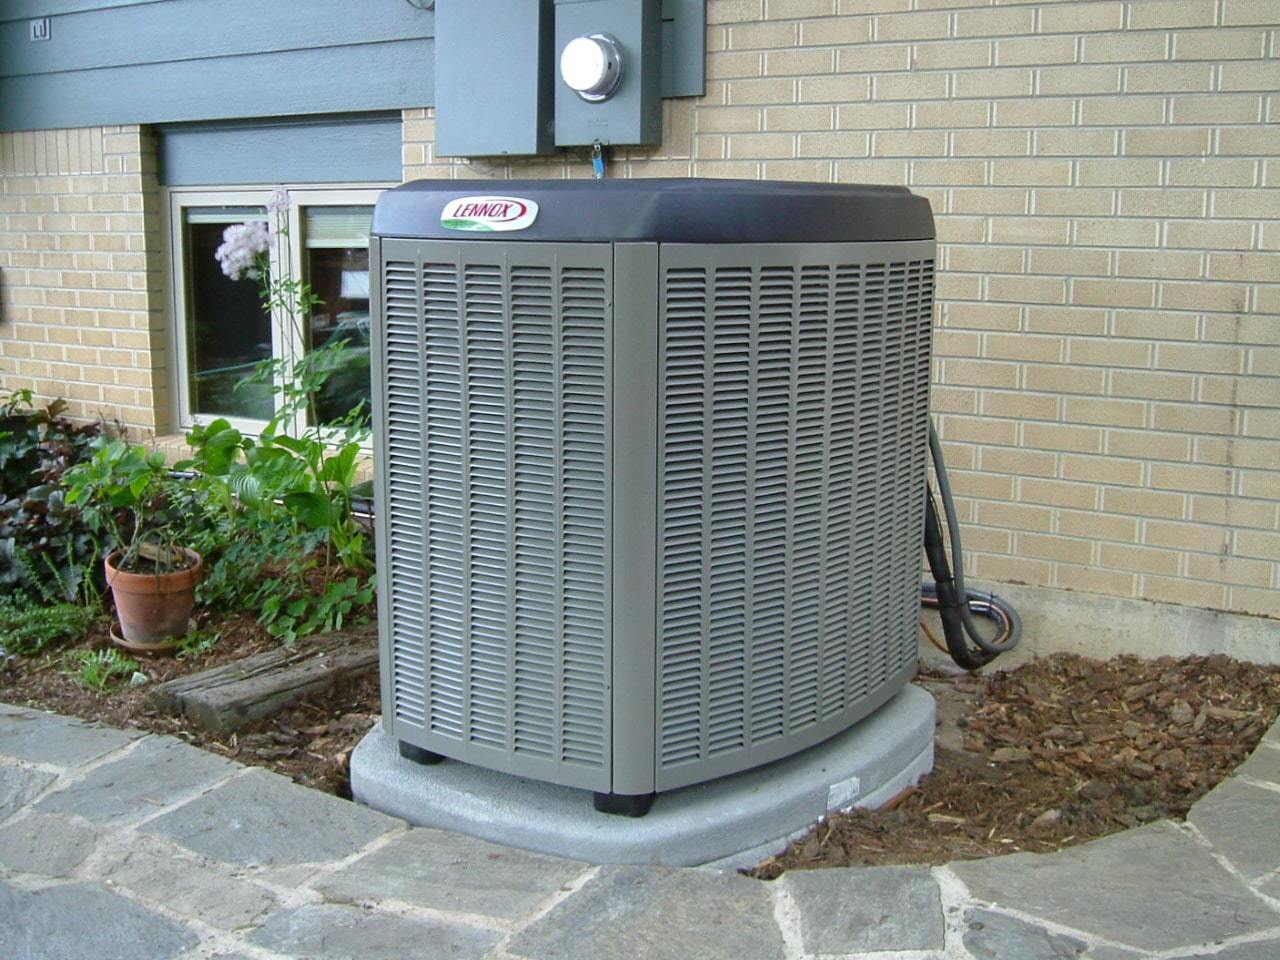 What To Do With A Noisy Air Conditioner?